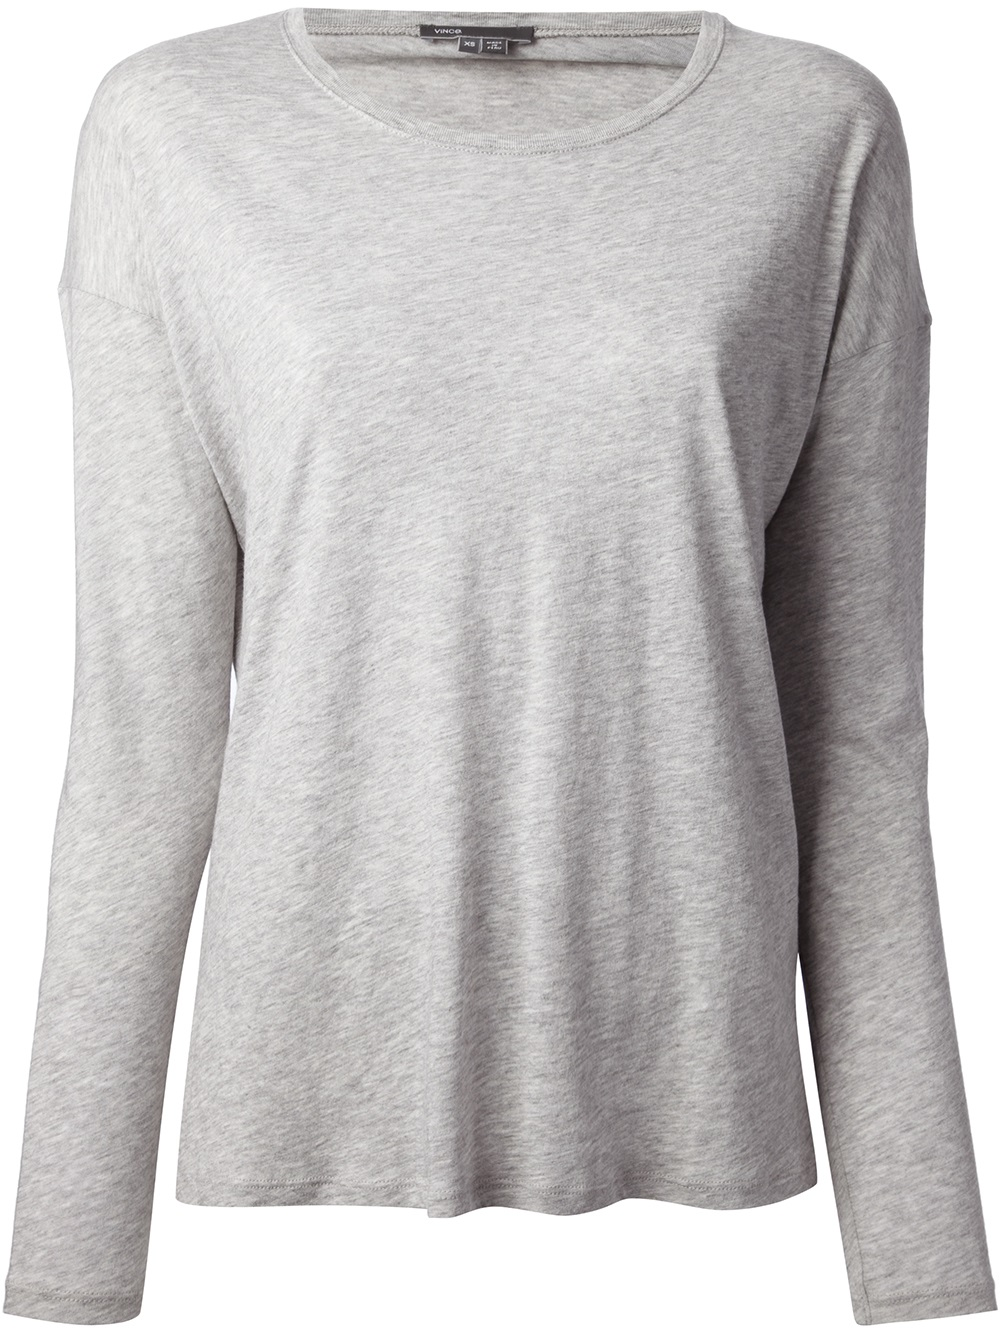 Vince long sleeve t shirt in gray grey lyst for Grey long sleeve shirts